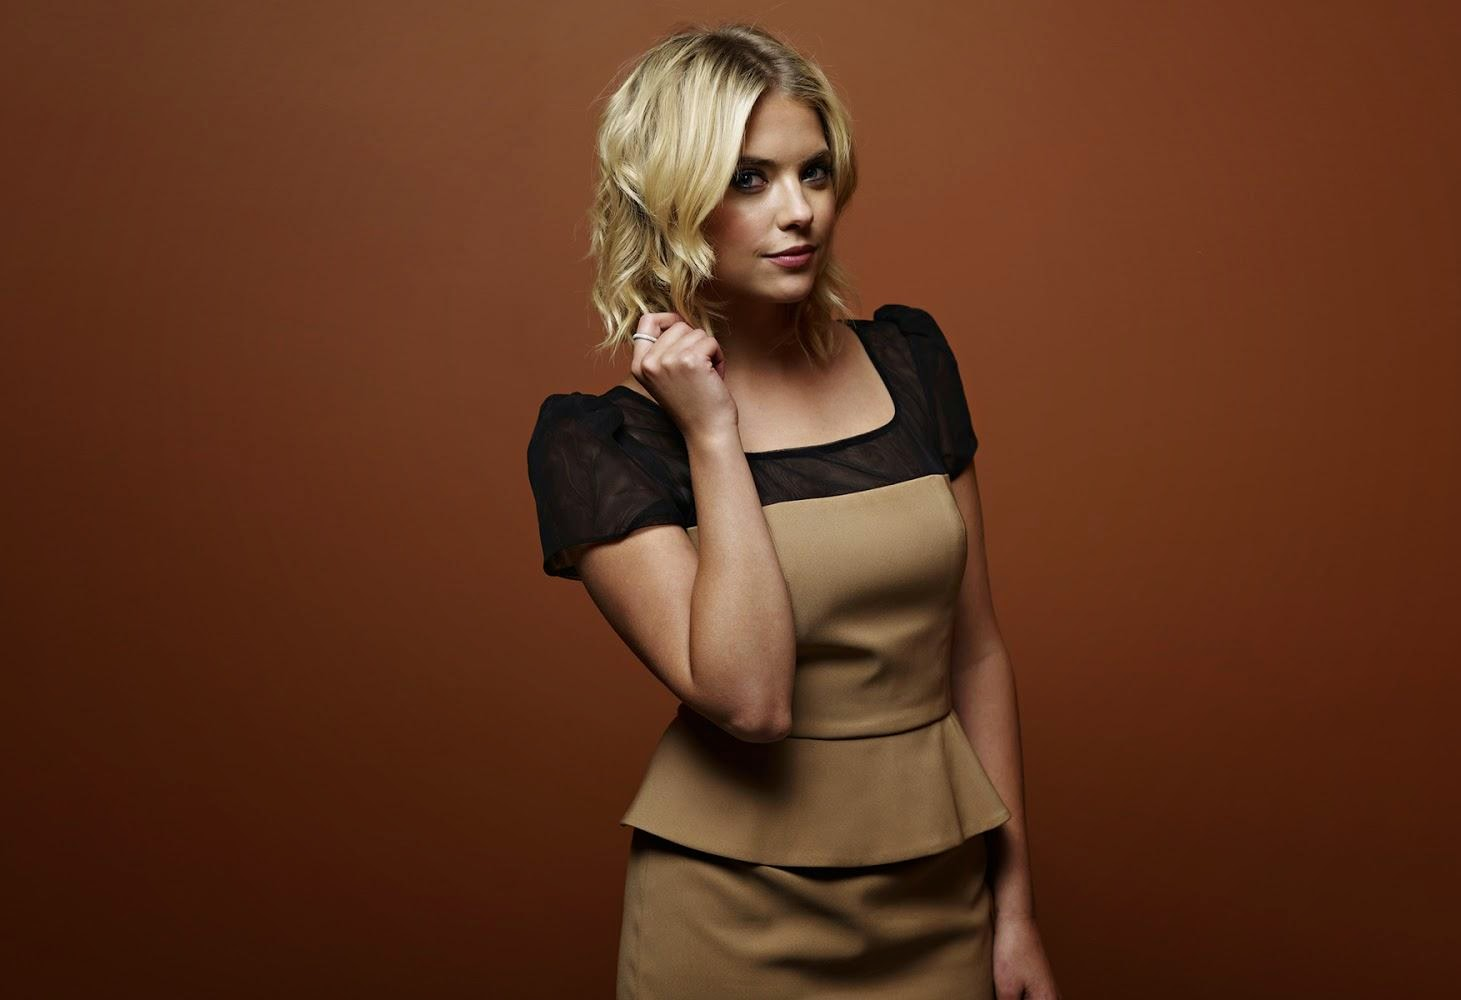 Ashley Benson Wallpapers Free Download